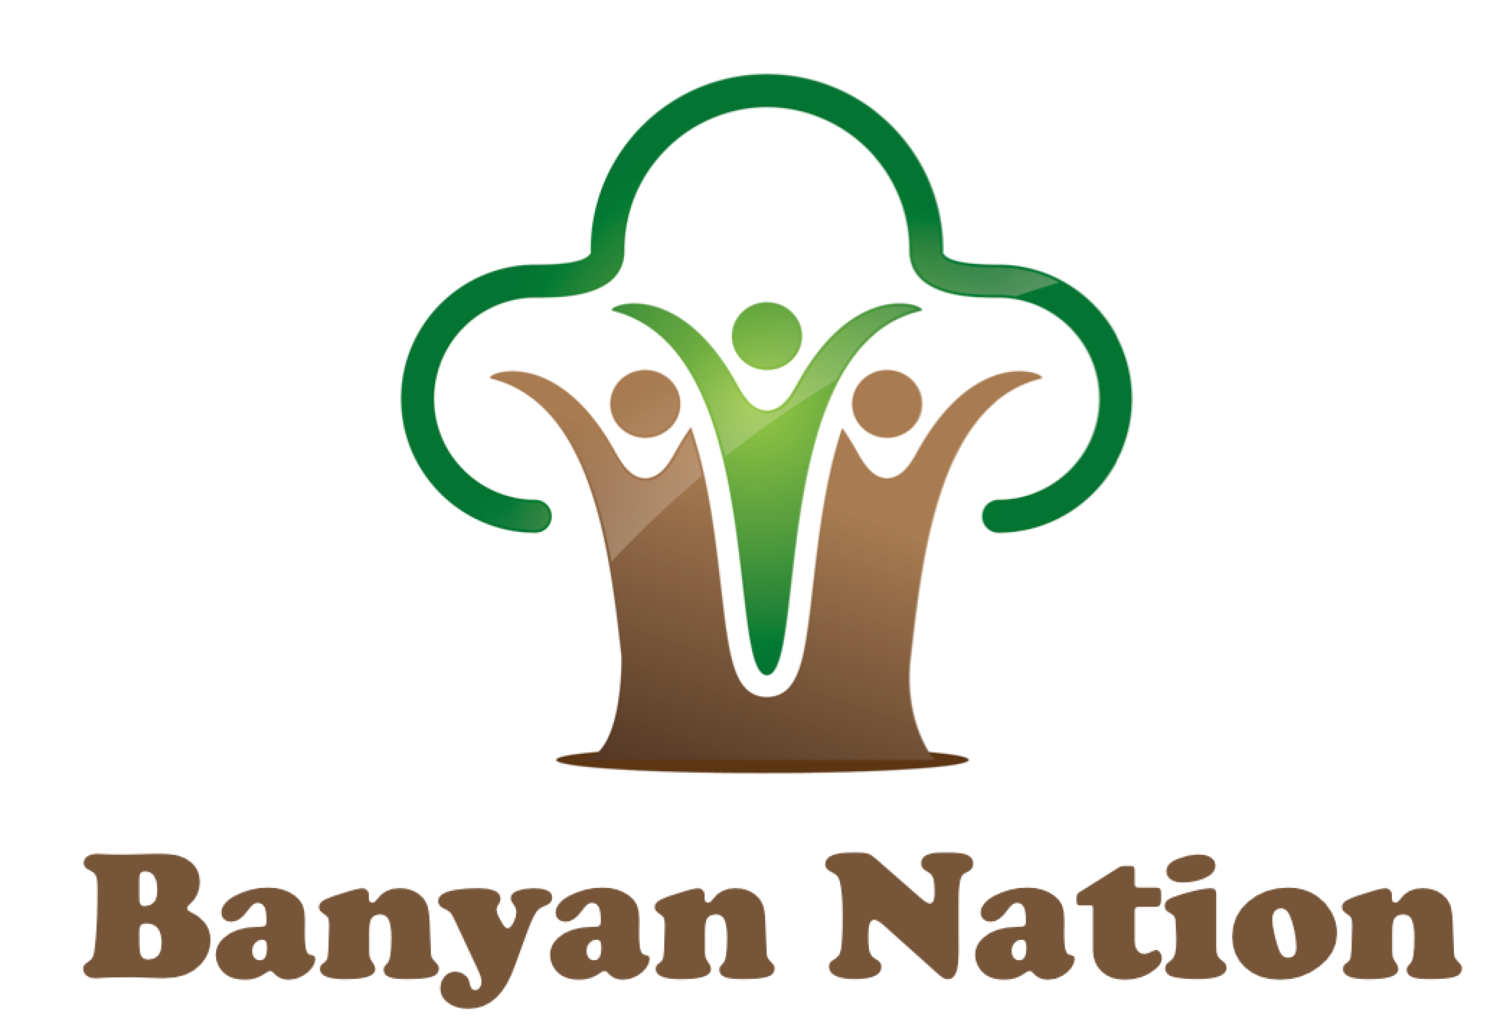 Banyan Nation